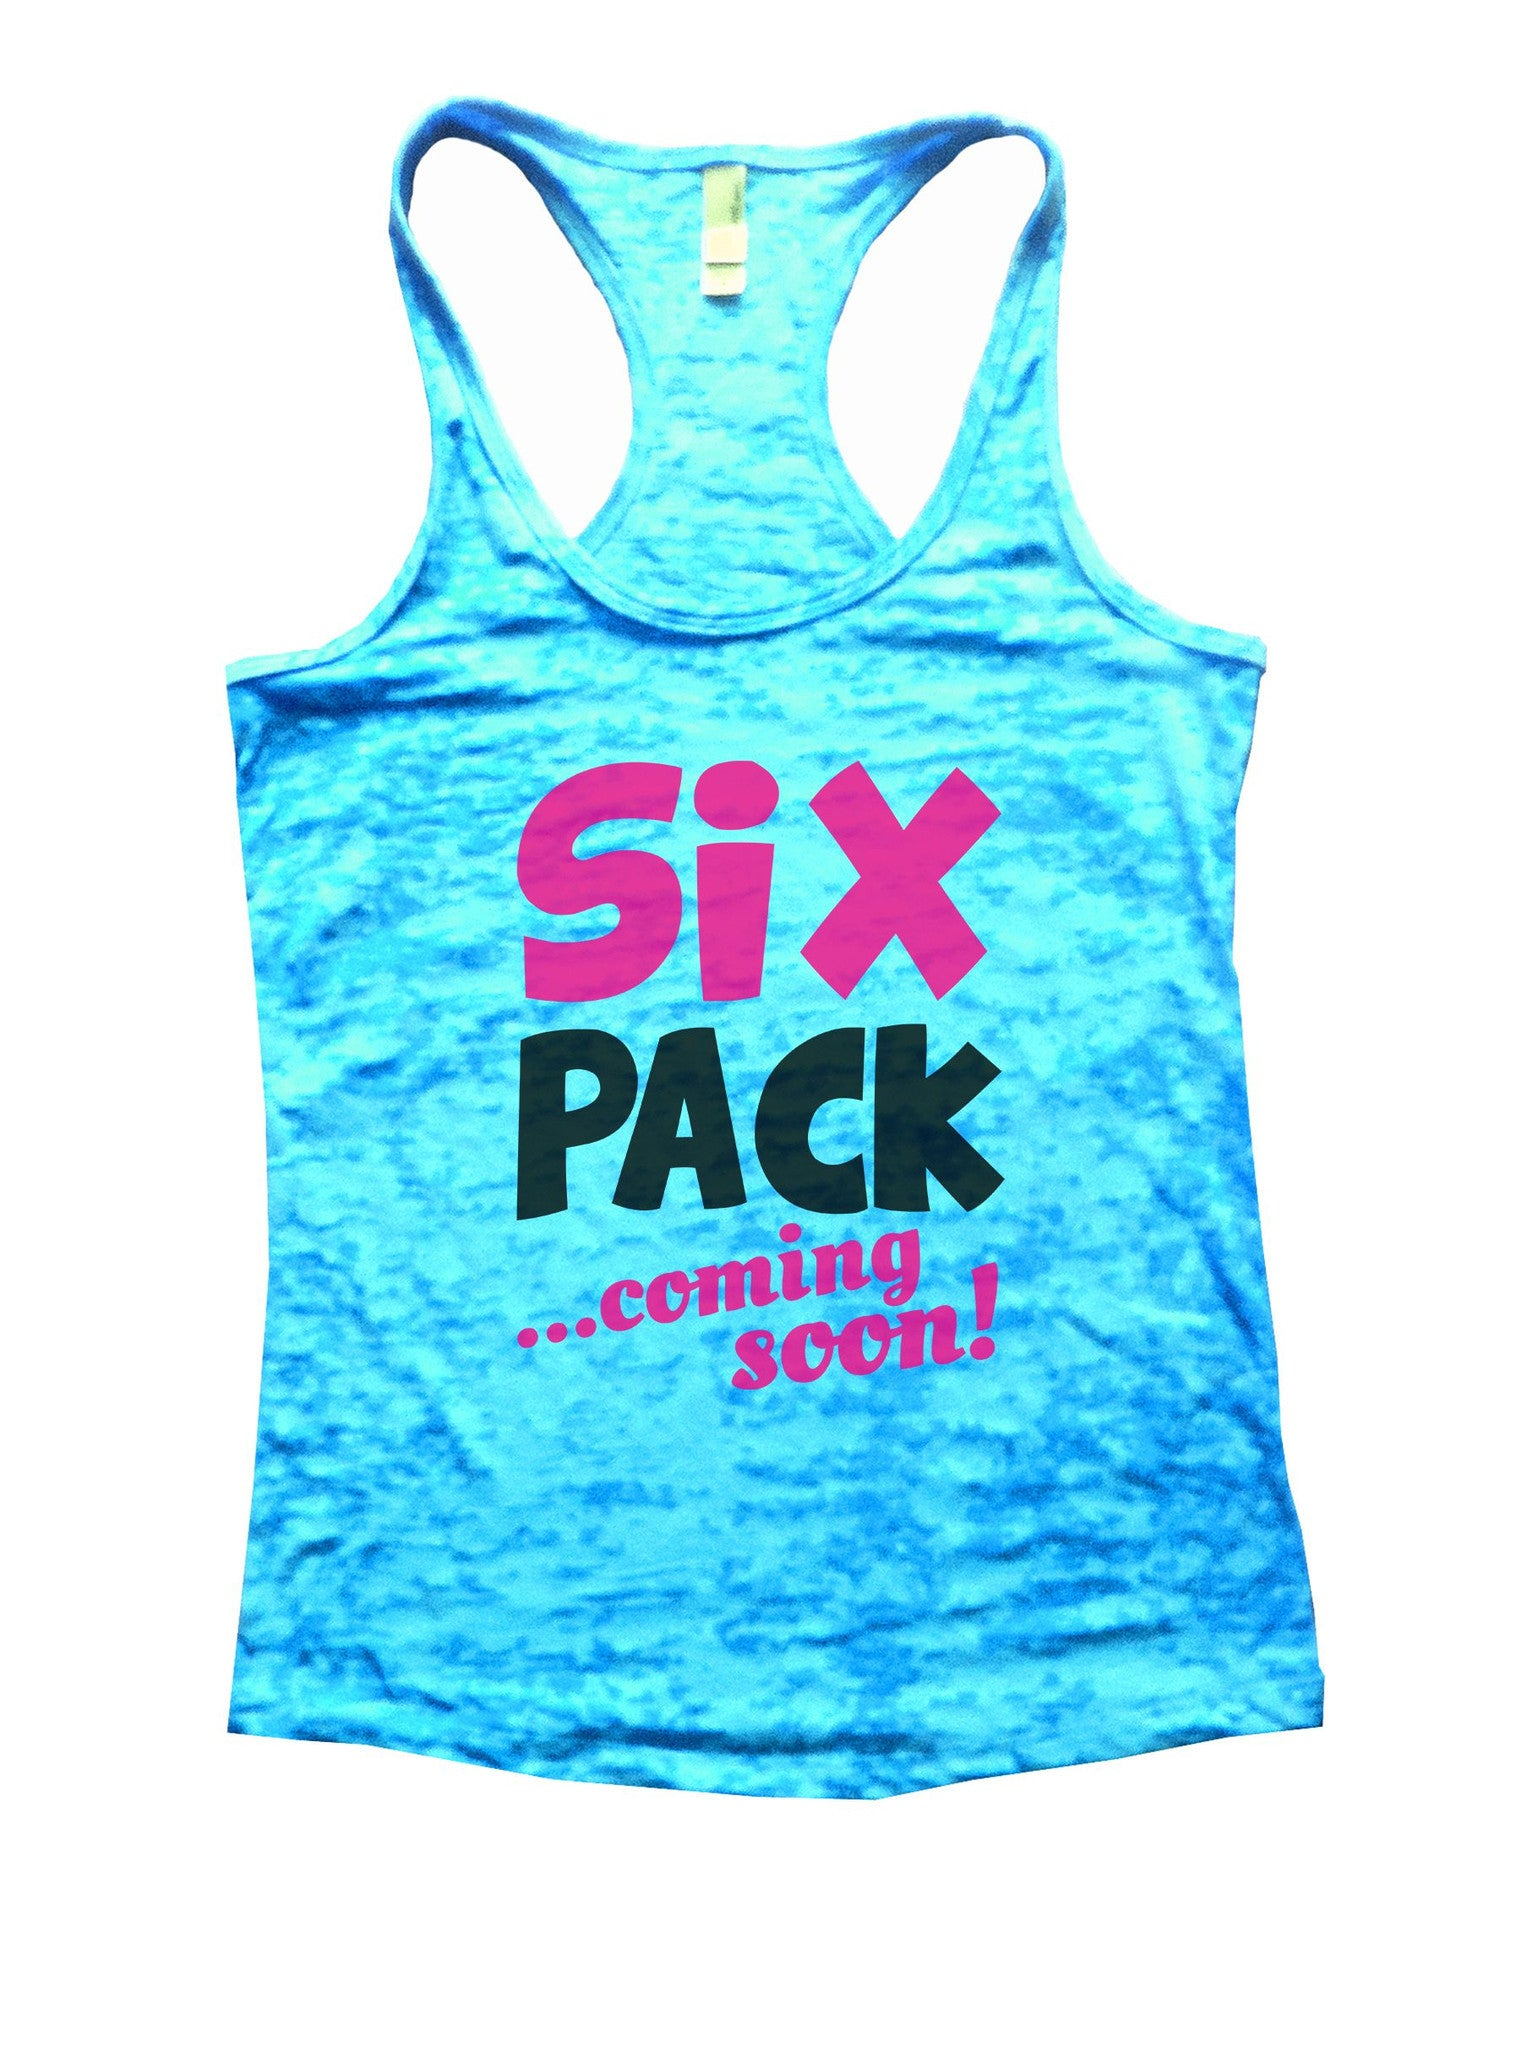 Six Pack Coming Soon Burnout Tank Top By BurnoutTankTops.com - 1038 - Funny Shirts Tank Tops Burnouts and Triblends  - 4